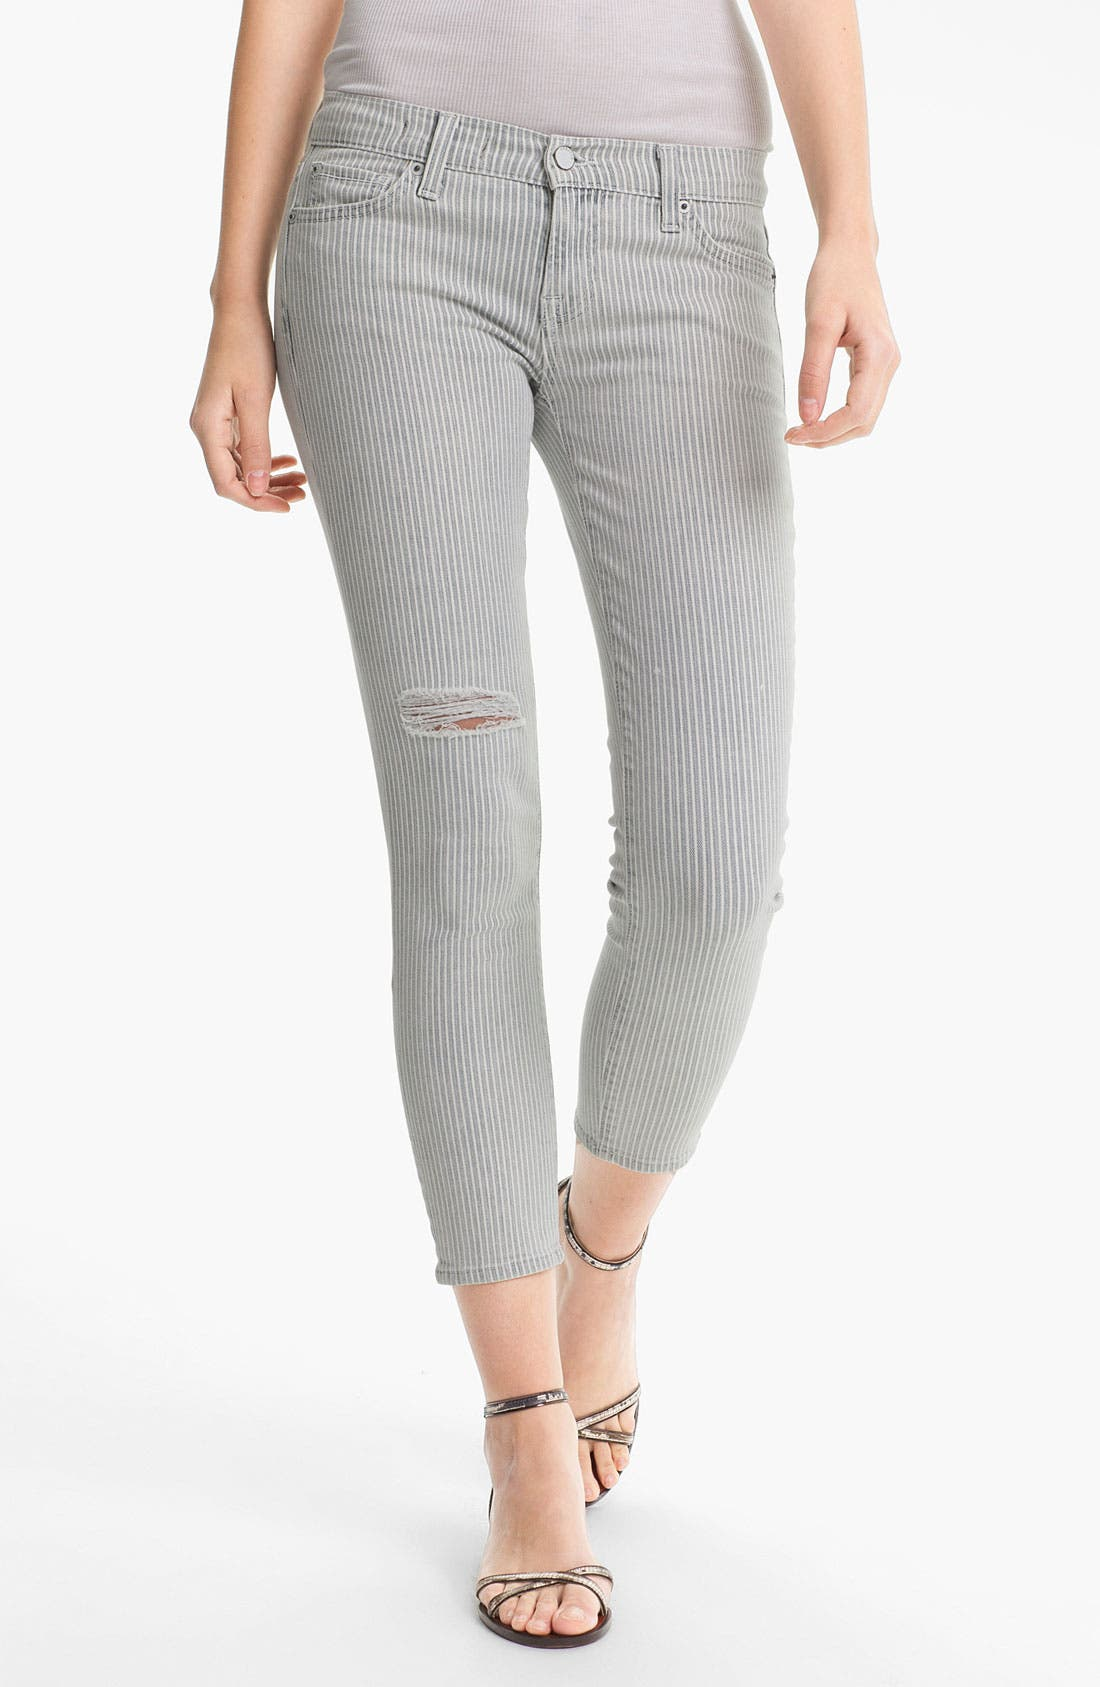 Alternate Image 1 Selected - TEXTILE Elizabeth and James 'Ozzy' Conductor Stripe Stretch Jeans